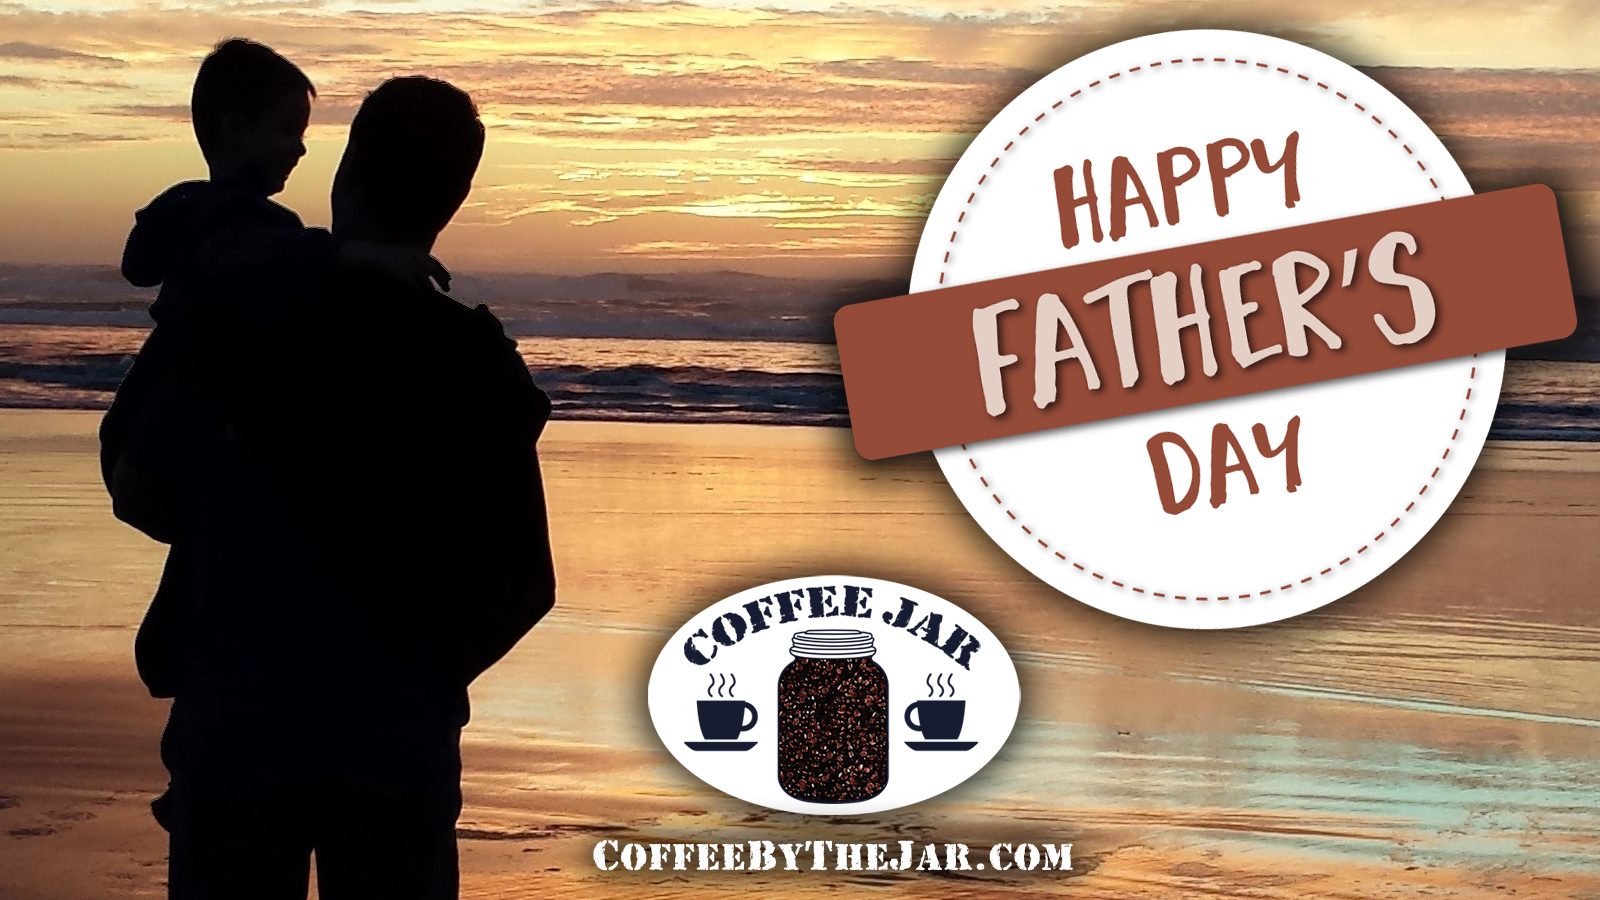 Coffee-Jar-Fathers-Day-wallpaper02-1600x900